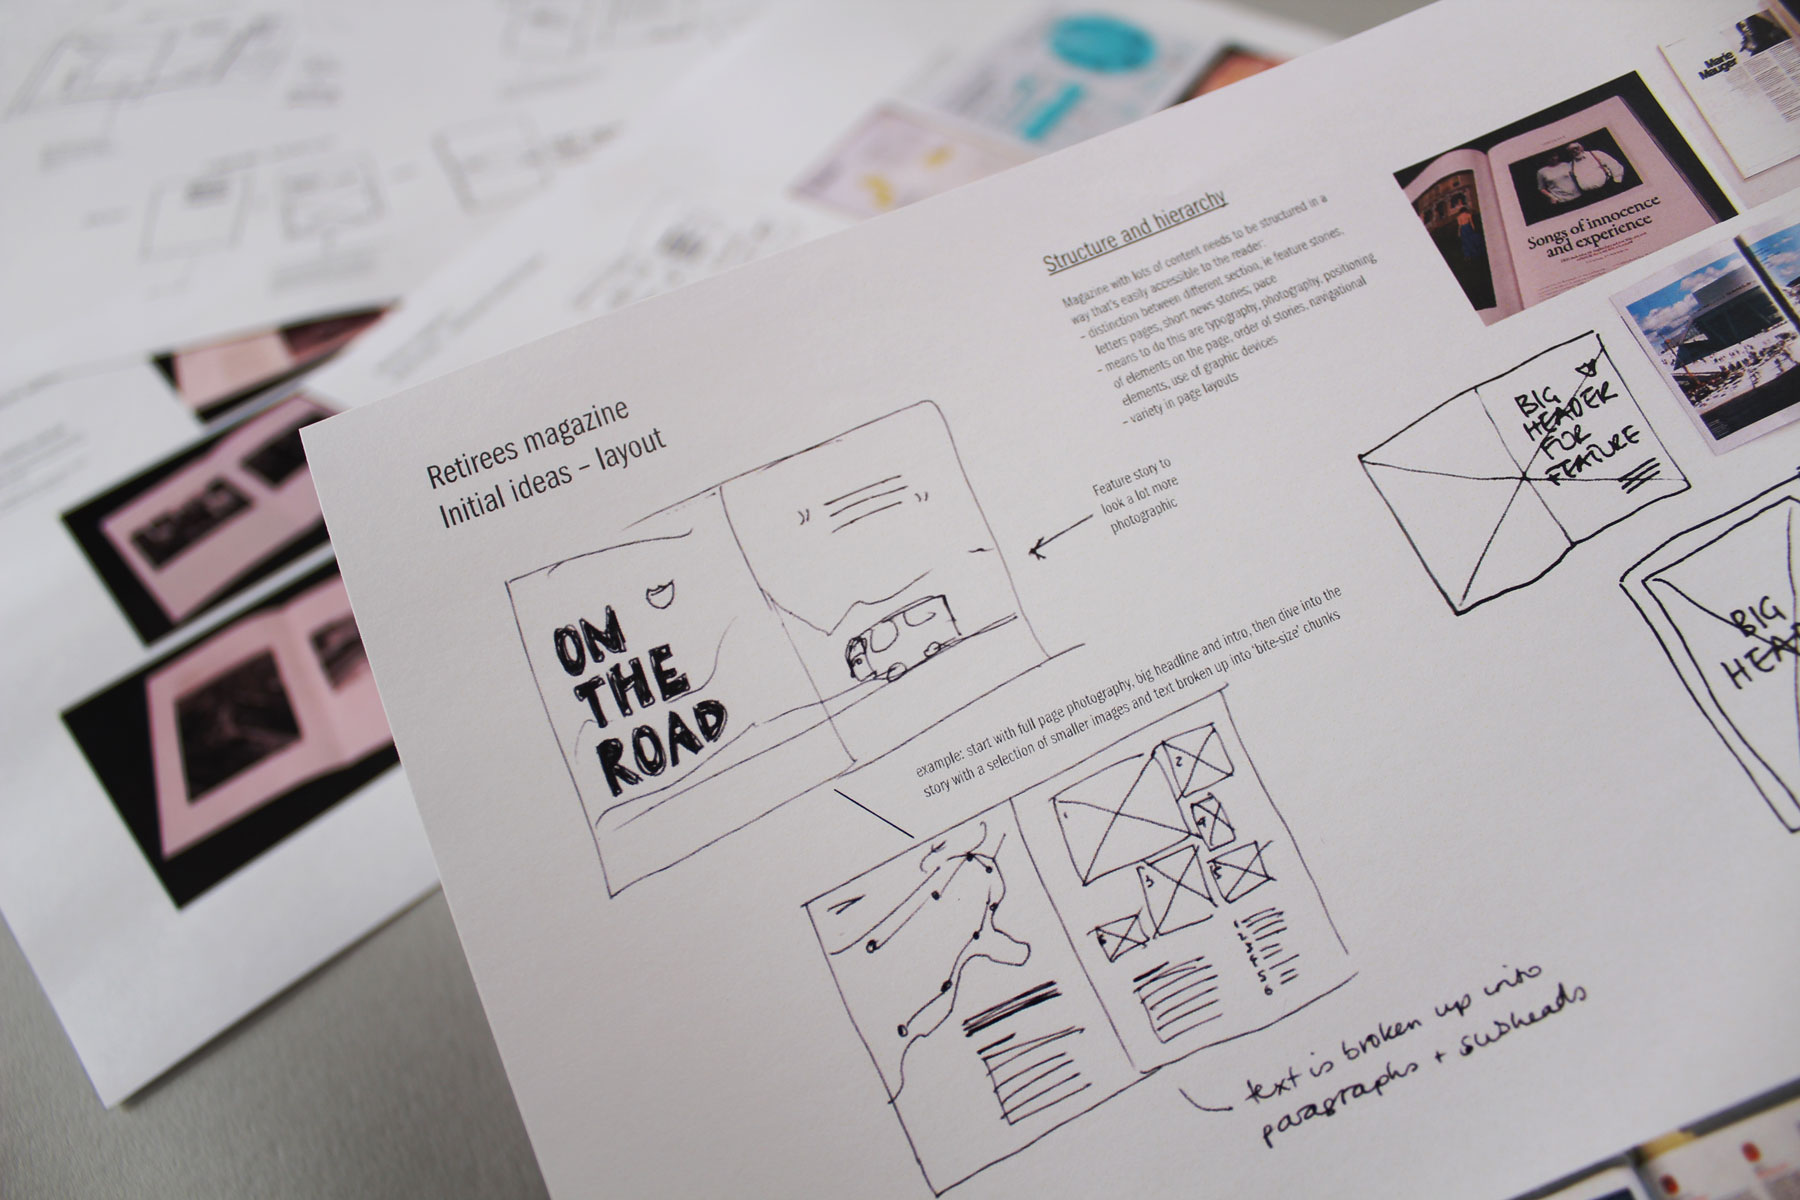 Our creative team creates ideas around content flow and context.